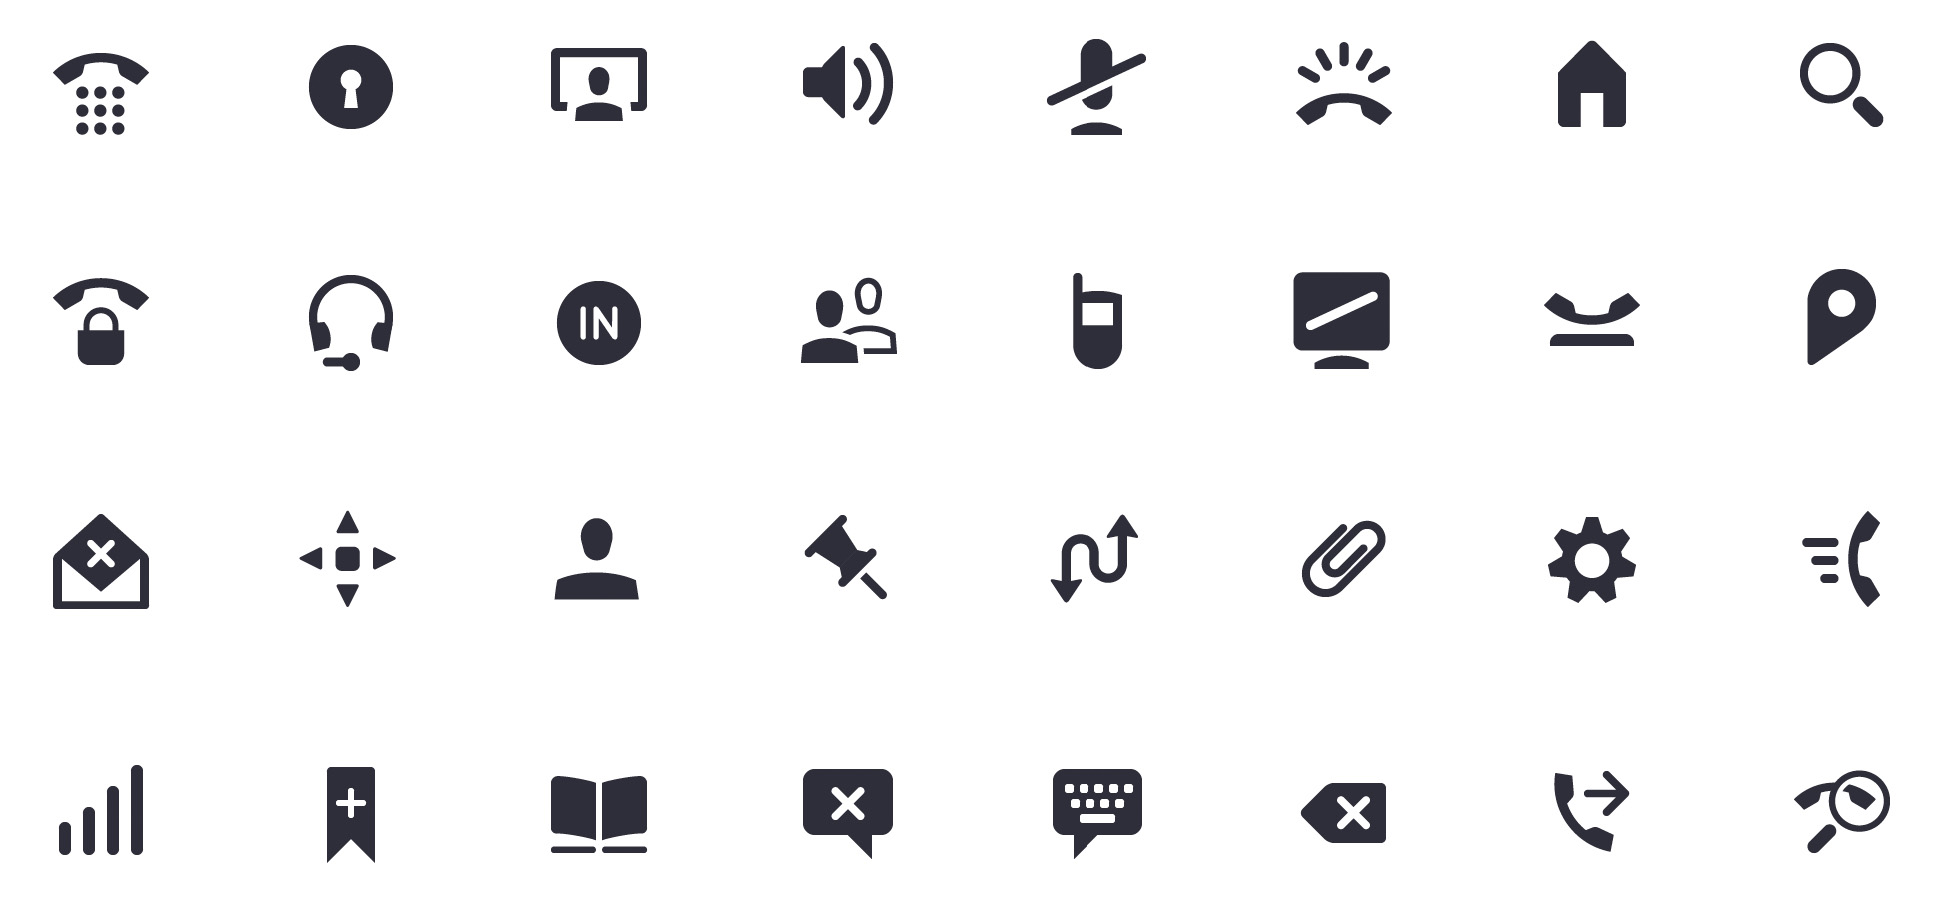 8 Cisco Phone Icons Images